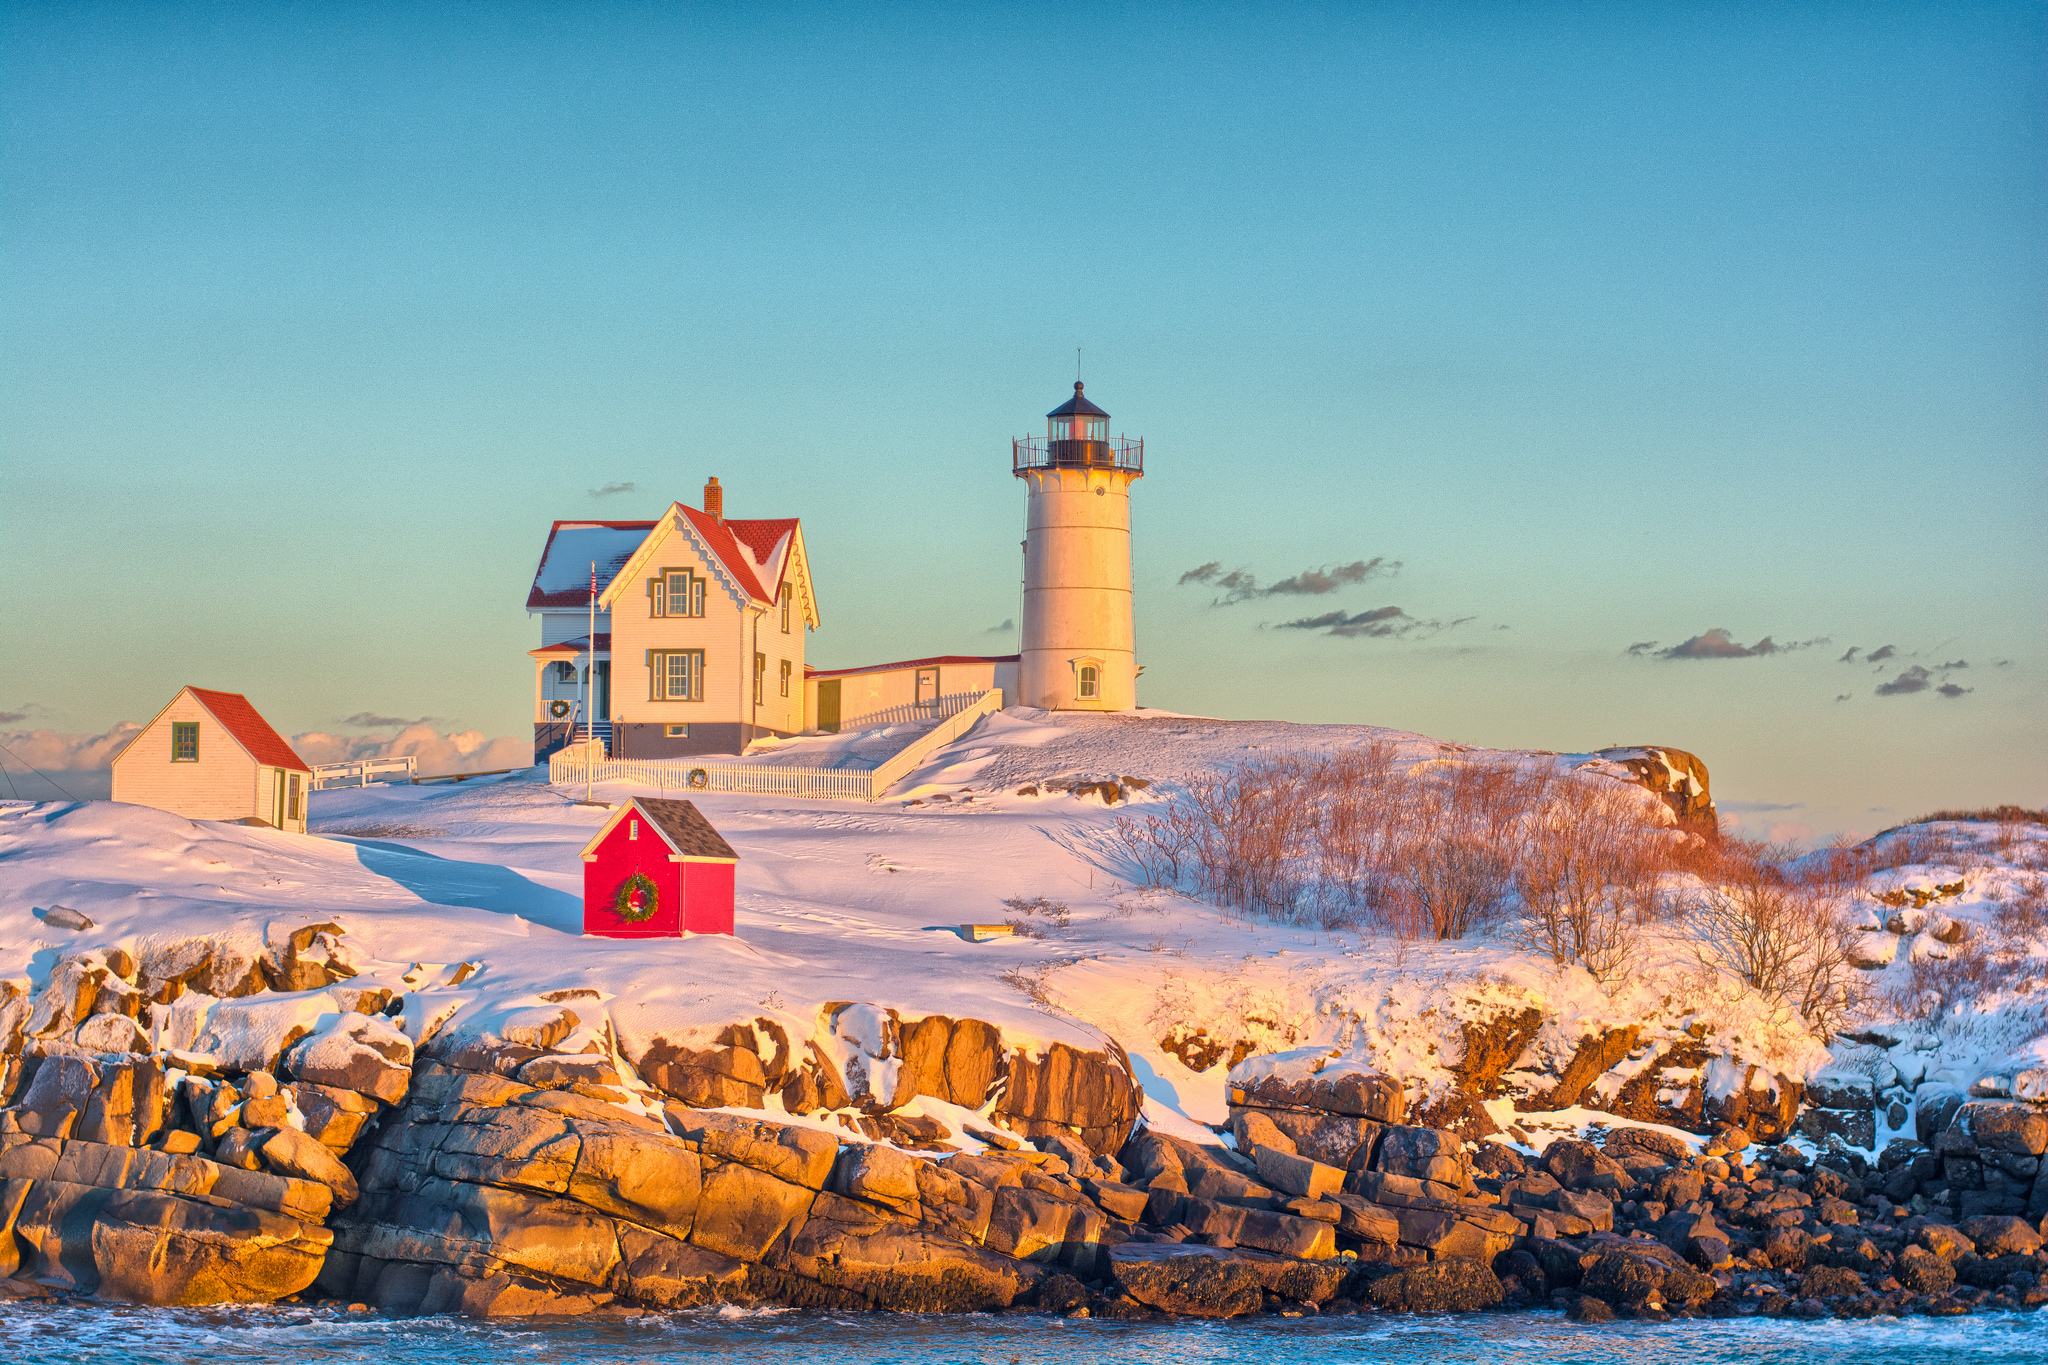 You Must Visit These 8 Awesome Places In Maine This Winter